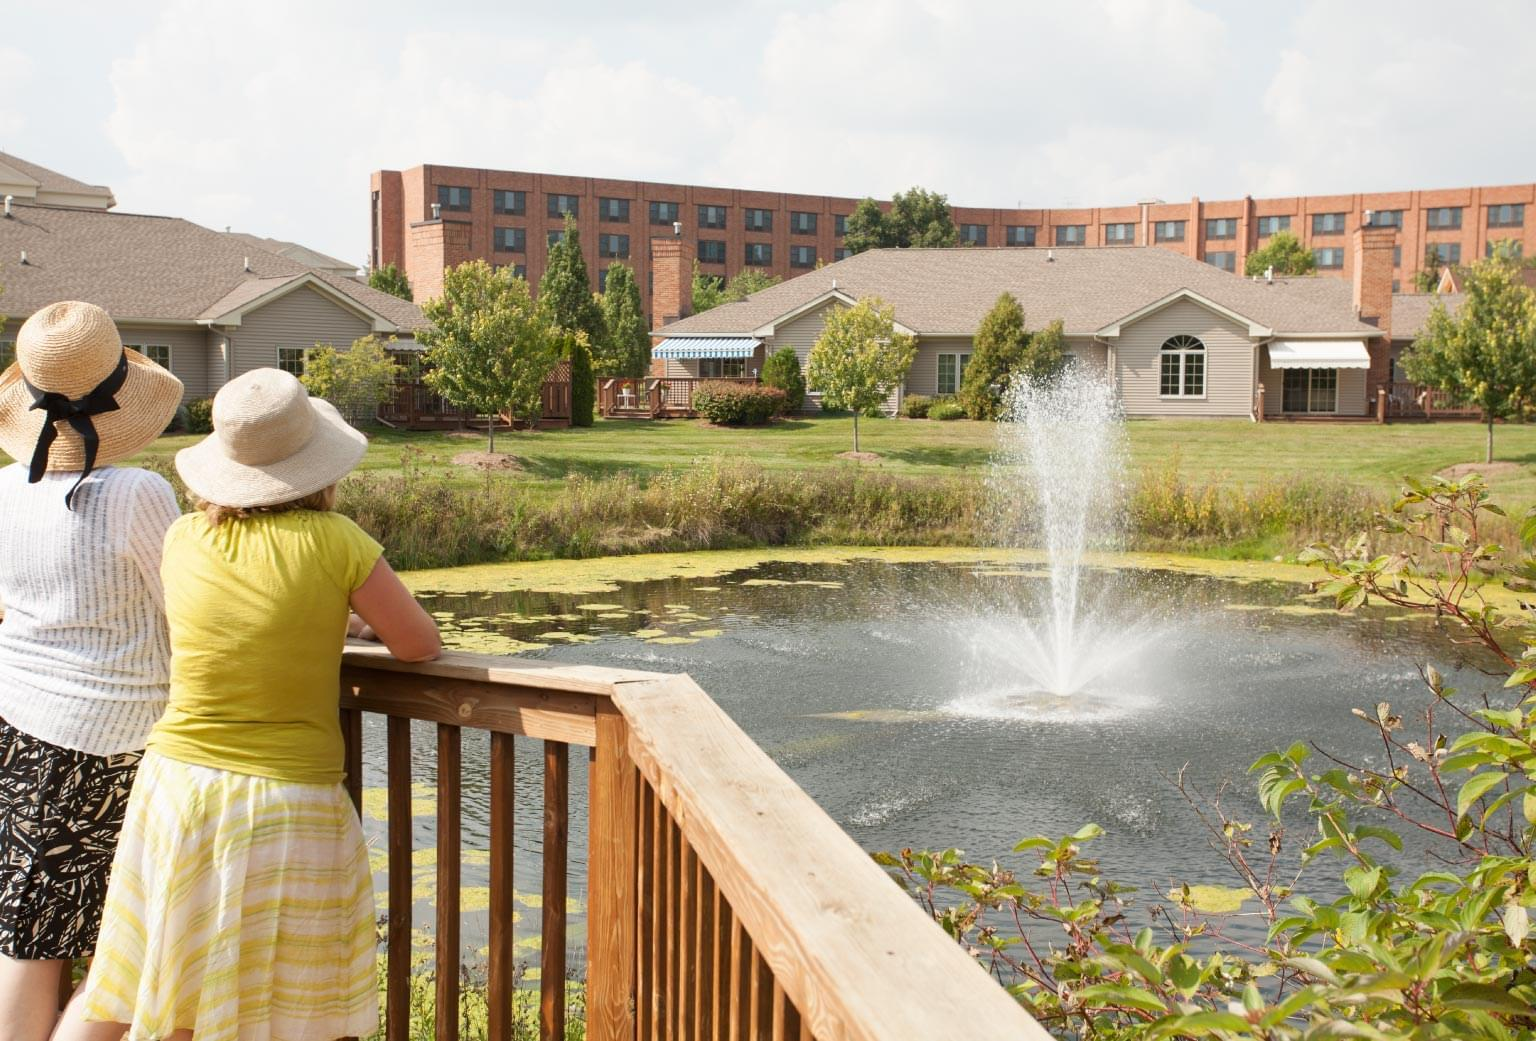 Photo of Glacier Hills, Assisted Living, Nursing Home, Independent Living, CCRC, Ann Arbor, MI 3